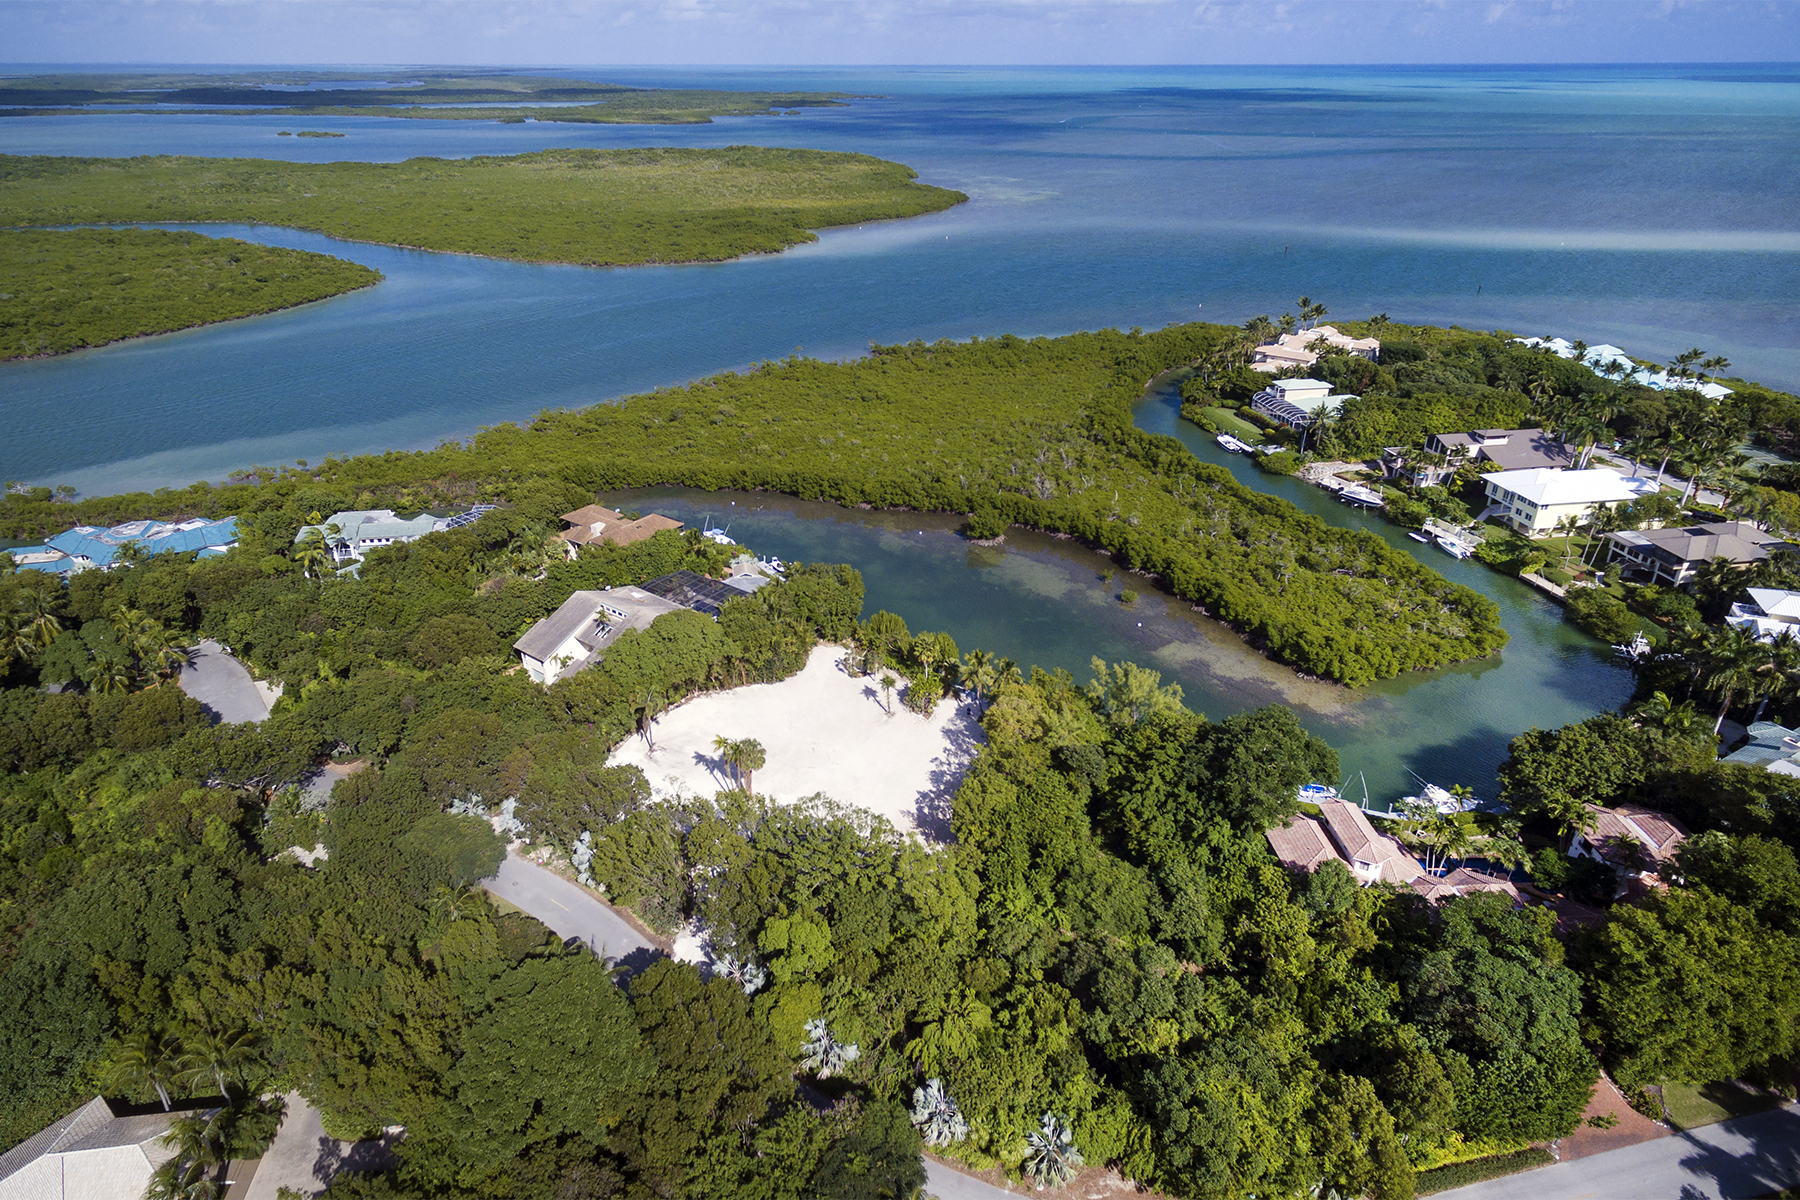 Arazi için Satış at Expansive Location to Build Your Dream Home at Ocean Reef 40-42 Cardinal Lane, Ocean Reef Community, Key Largo, Florida, 33037 Amerika Birleşik Devletleri